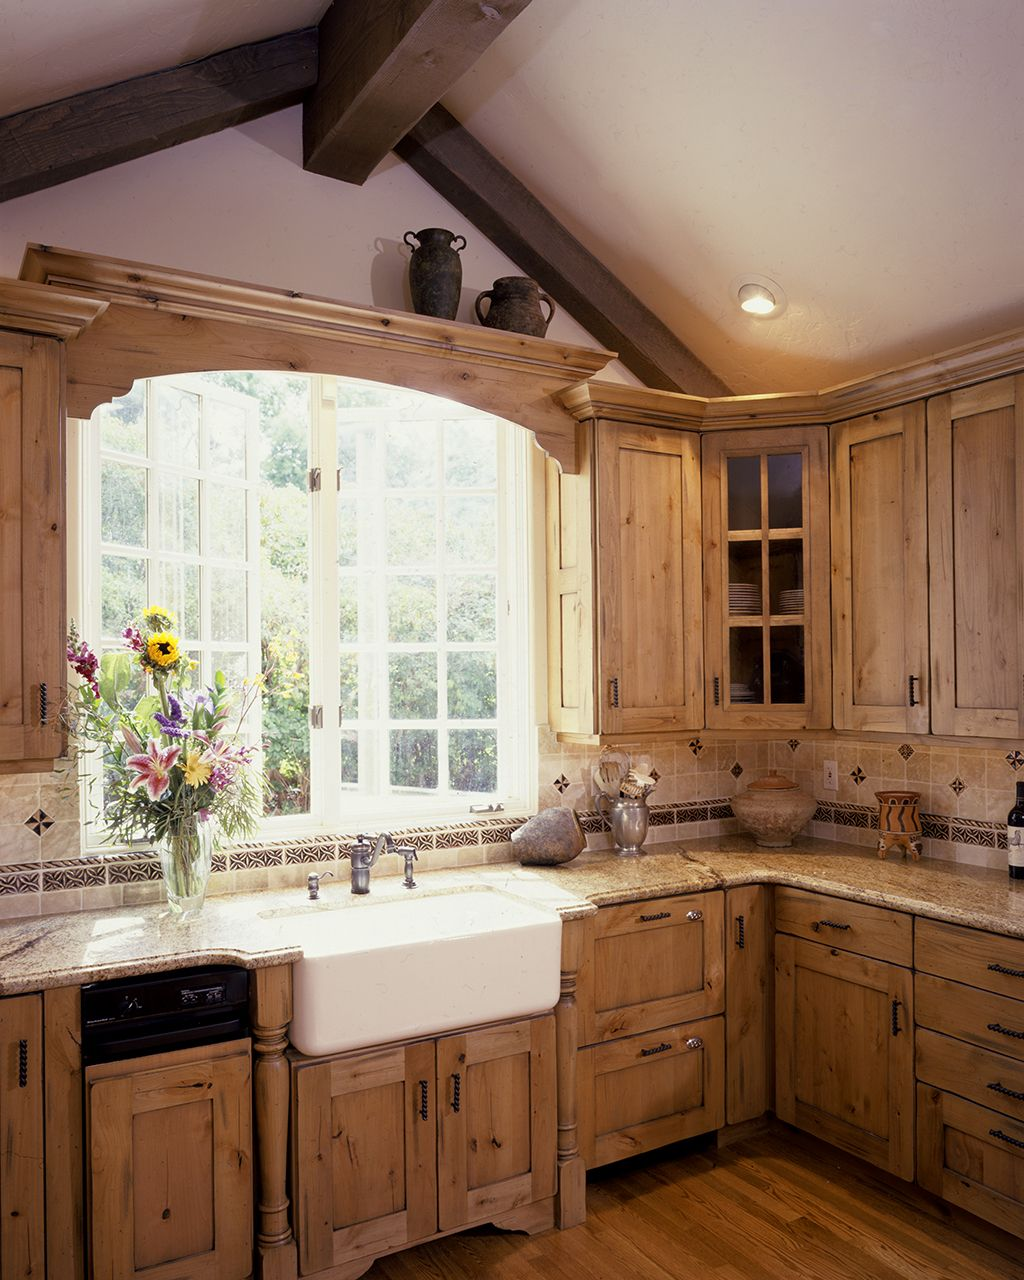 Kitchen Cabinets French Country Style: Bright Country Kitchen In The Suburbs